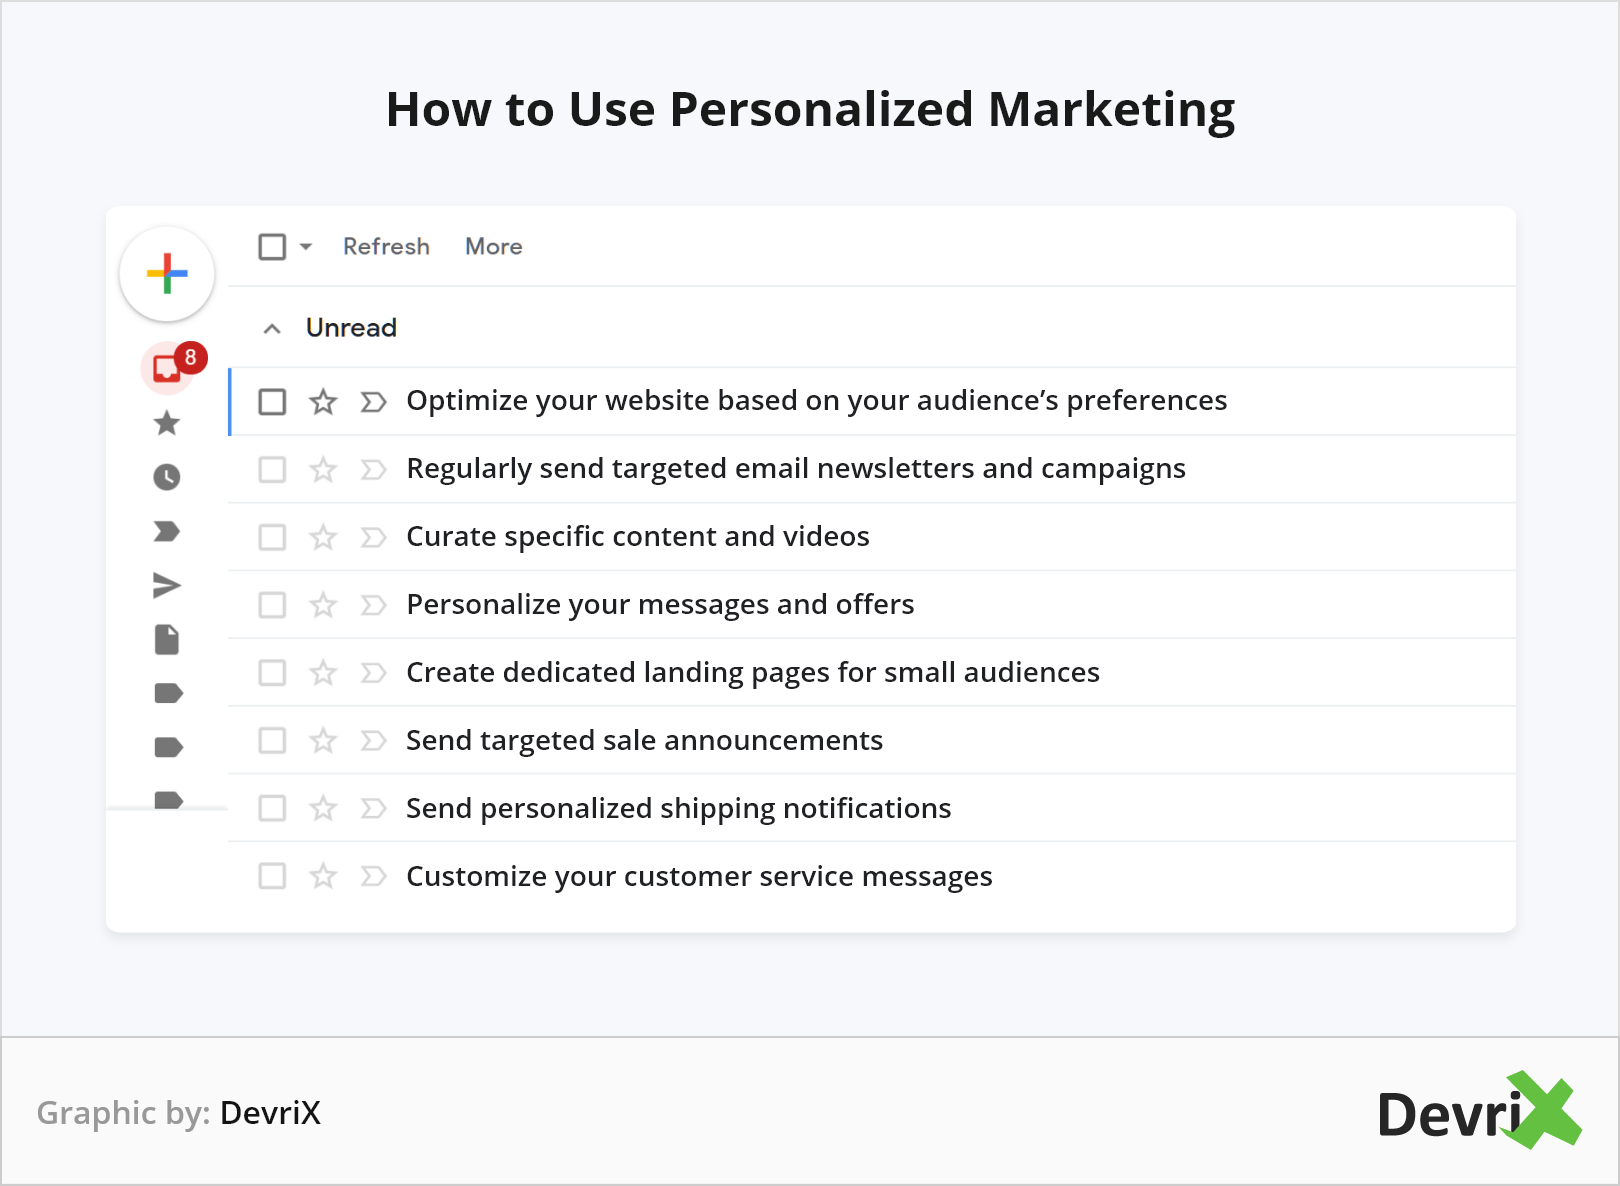 How to Use Personalized Marketing